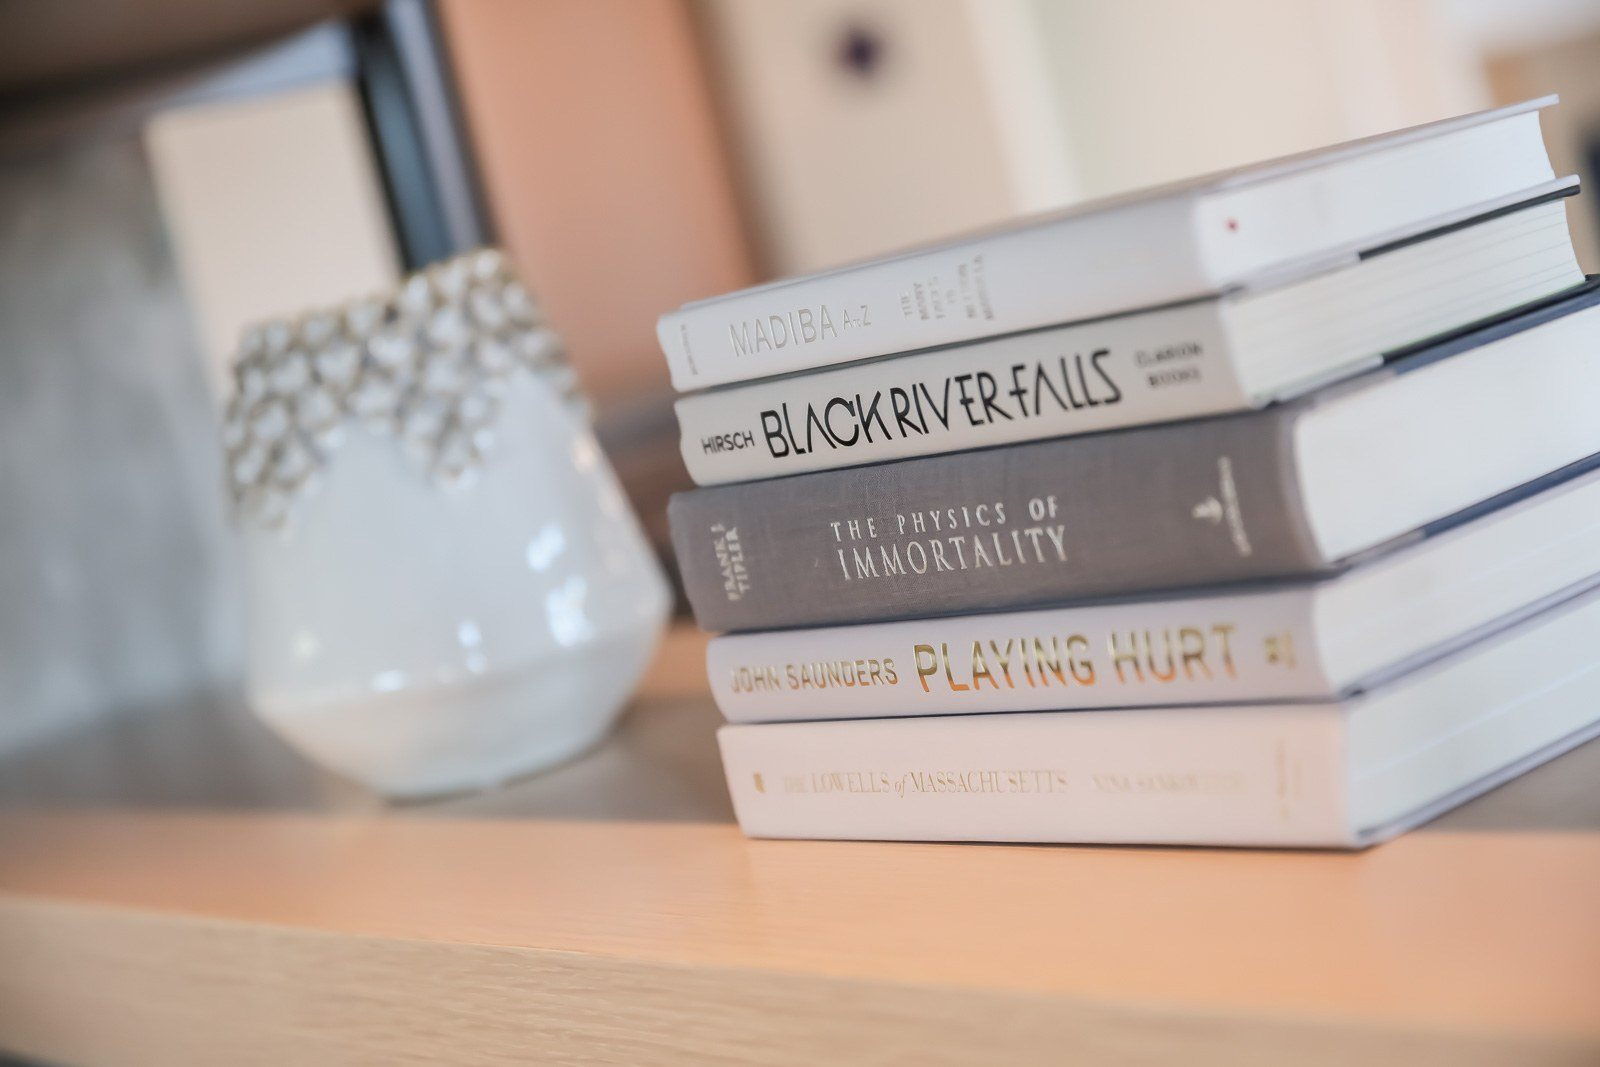 Bookshelf decor with curated white books and vase in lobby